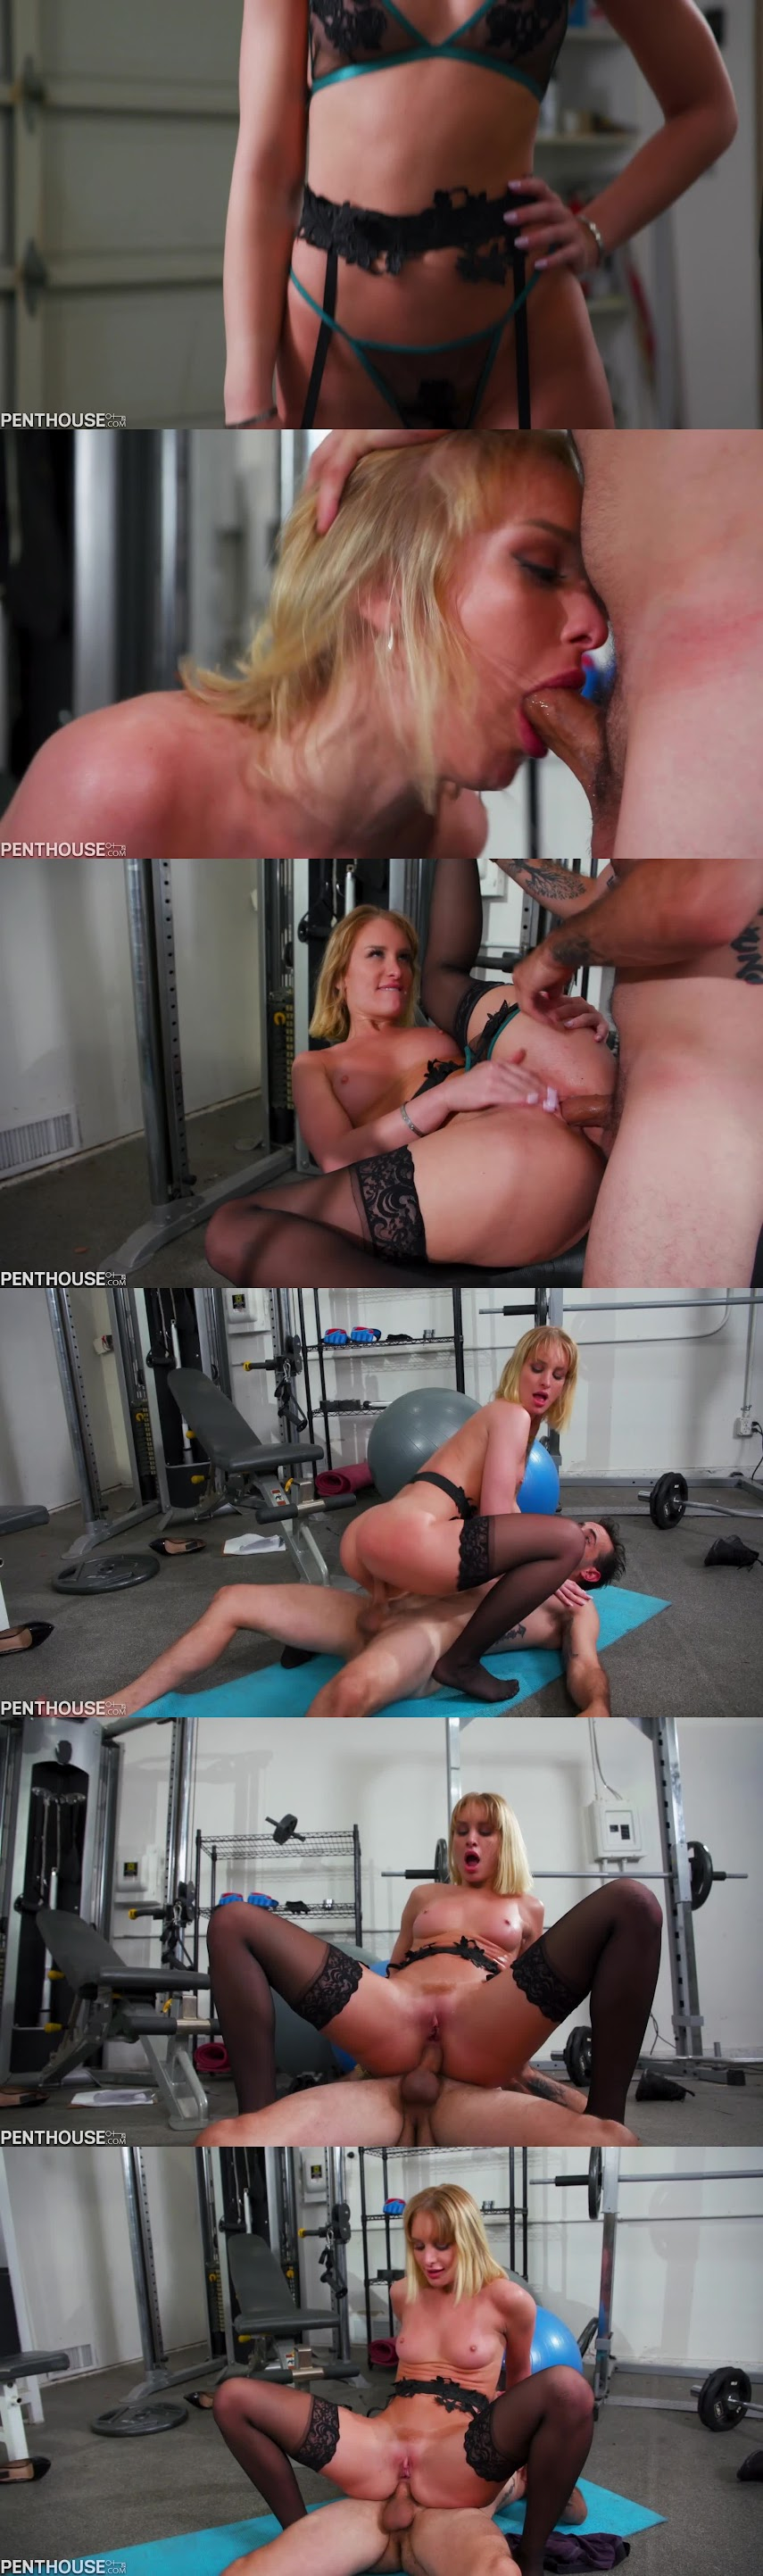 Daisy Stone - Her Hot And Horny Holes Get Worked Out - Girlsdelta